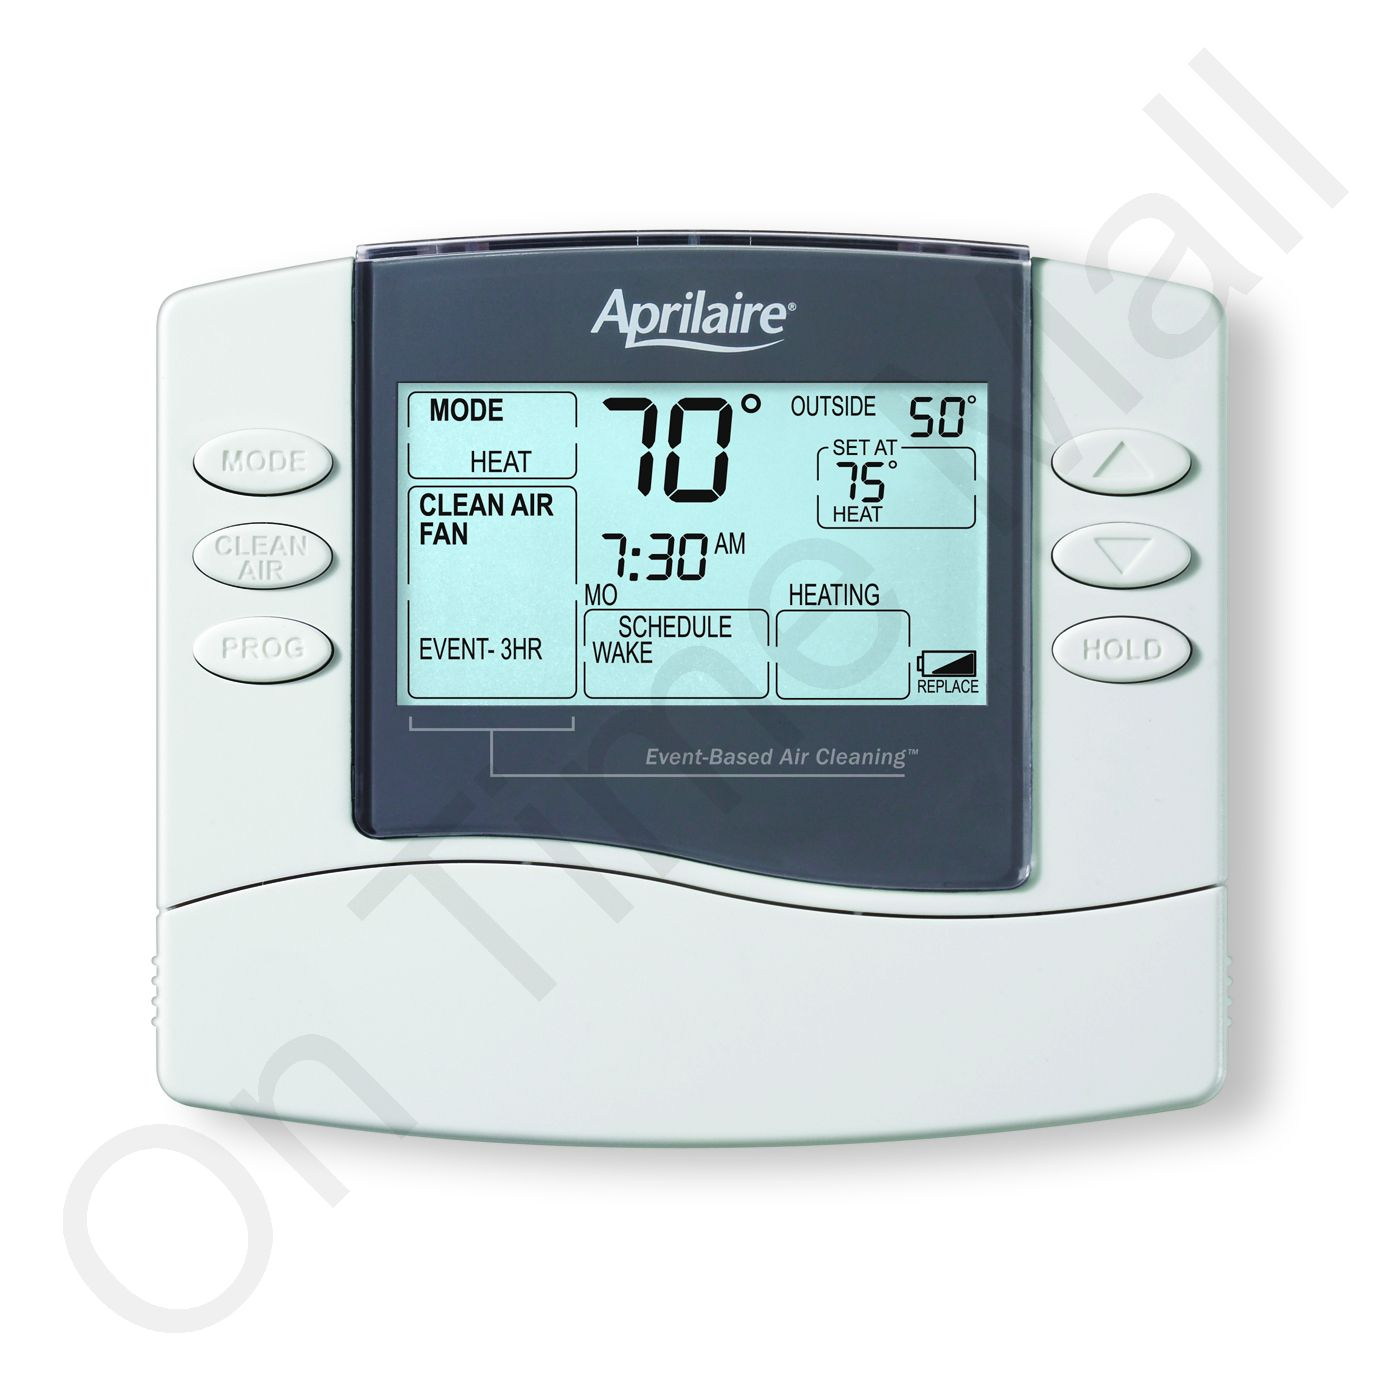 Aprilaire 8476 Universal Programmable Thermostat